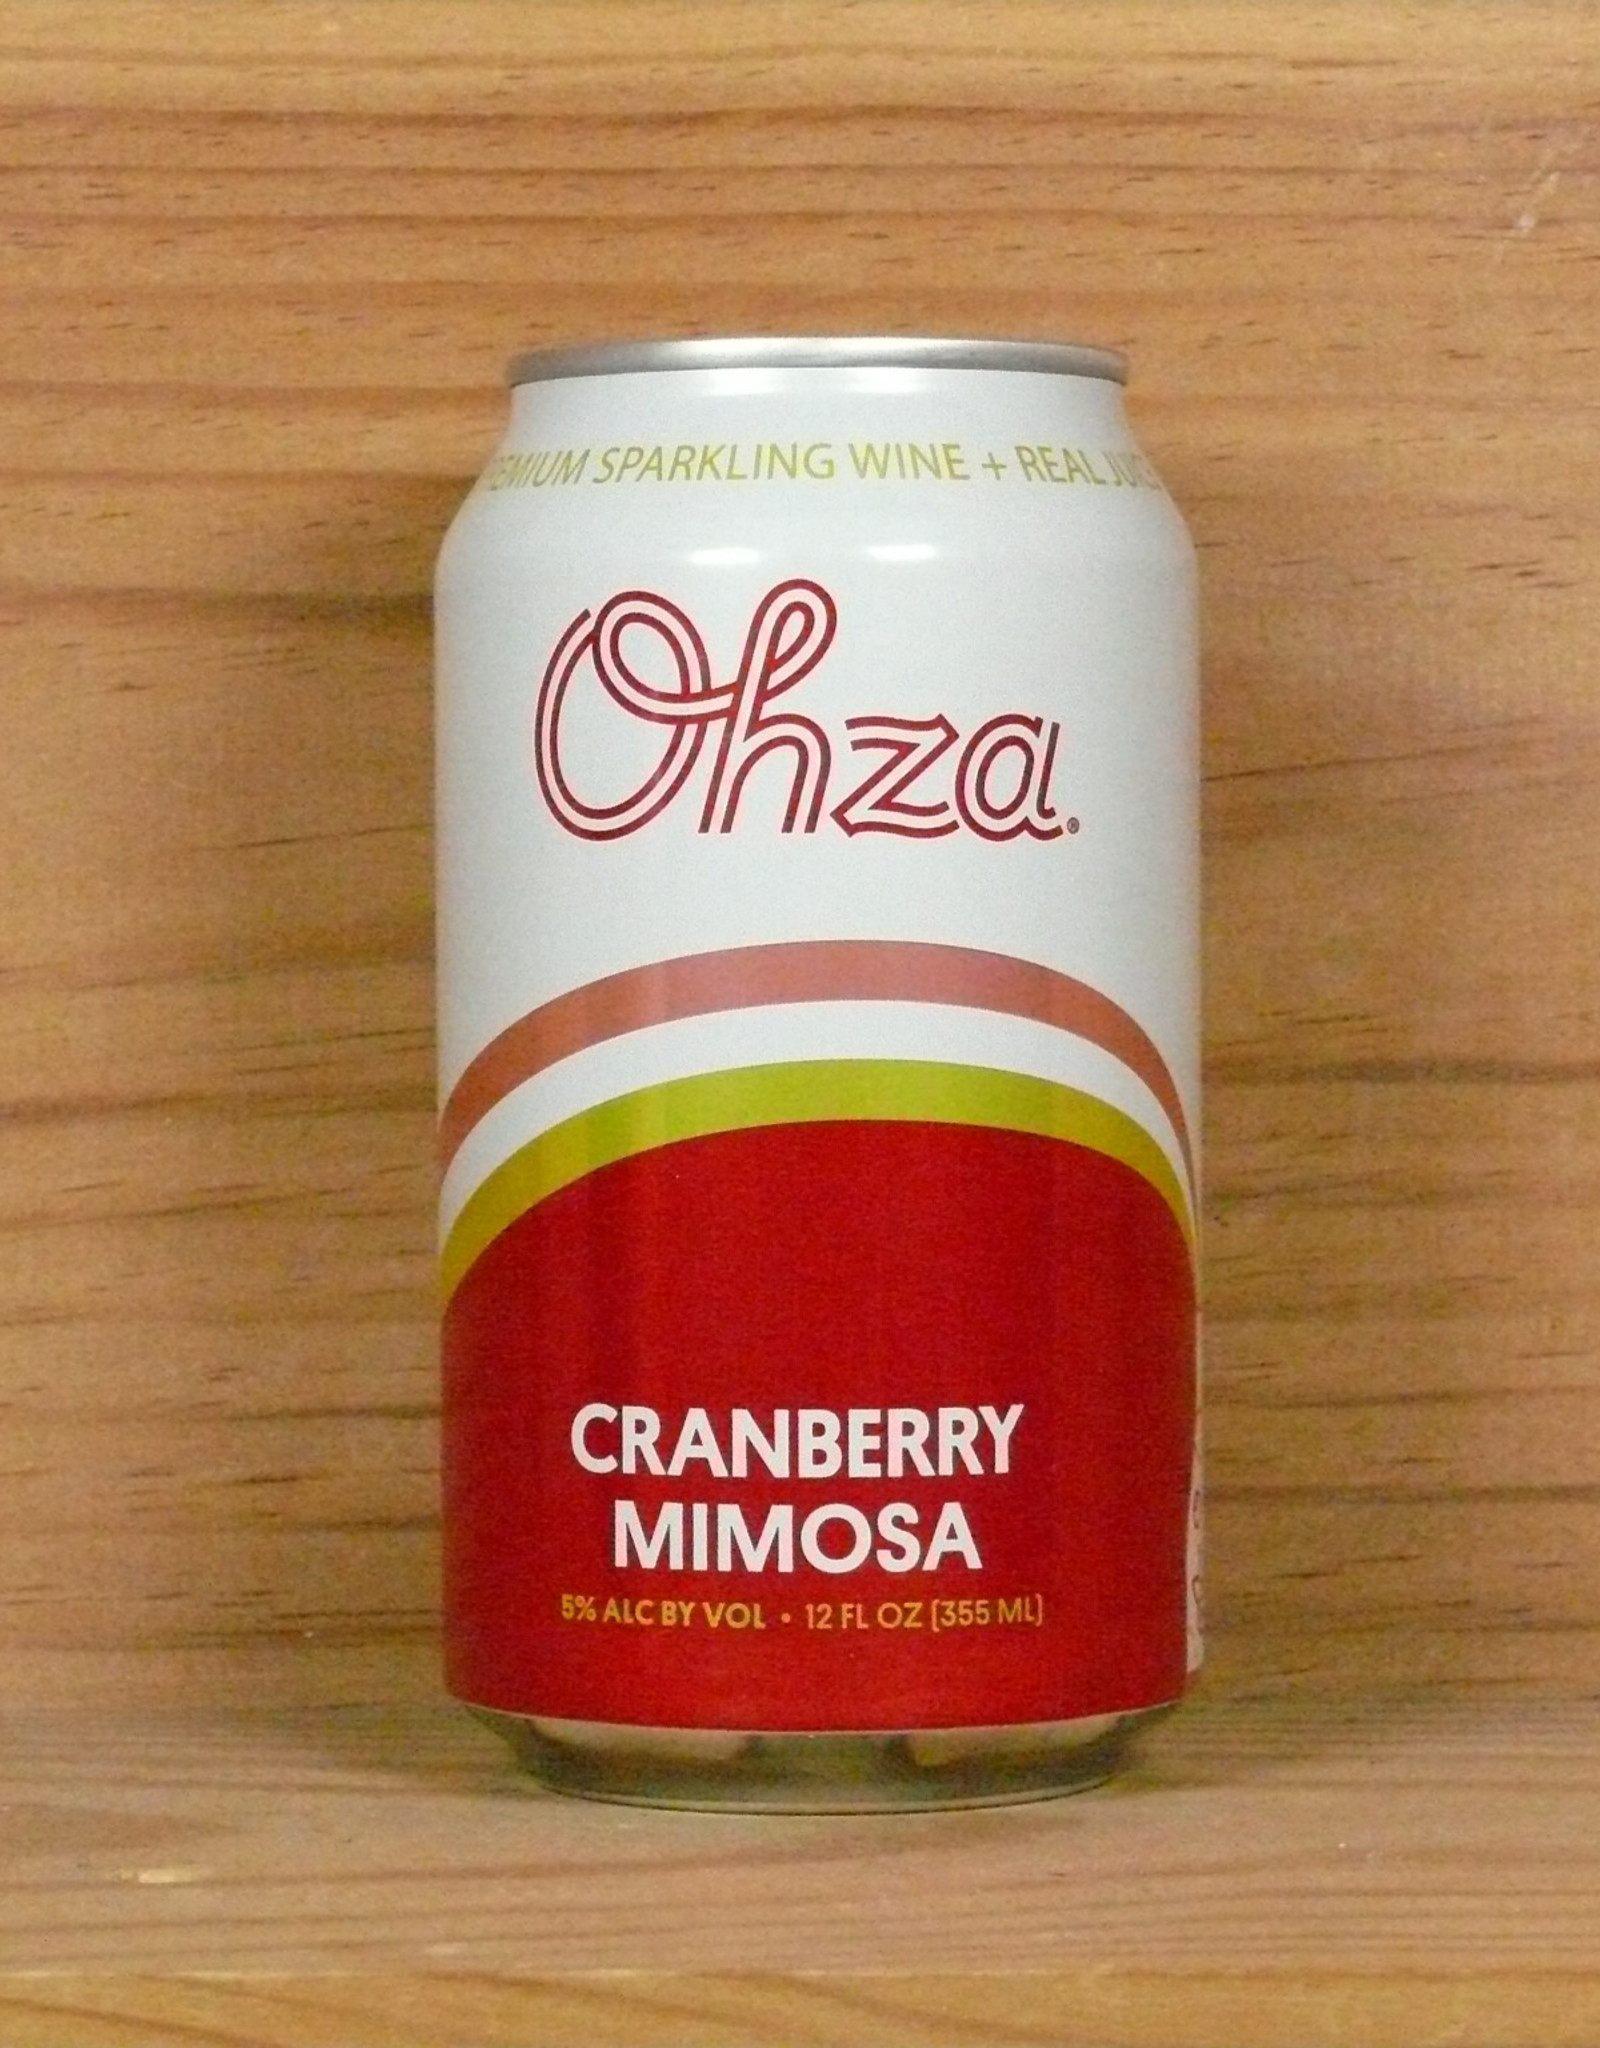 Ohza - Cranberry Mimosa in a can!